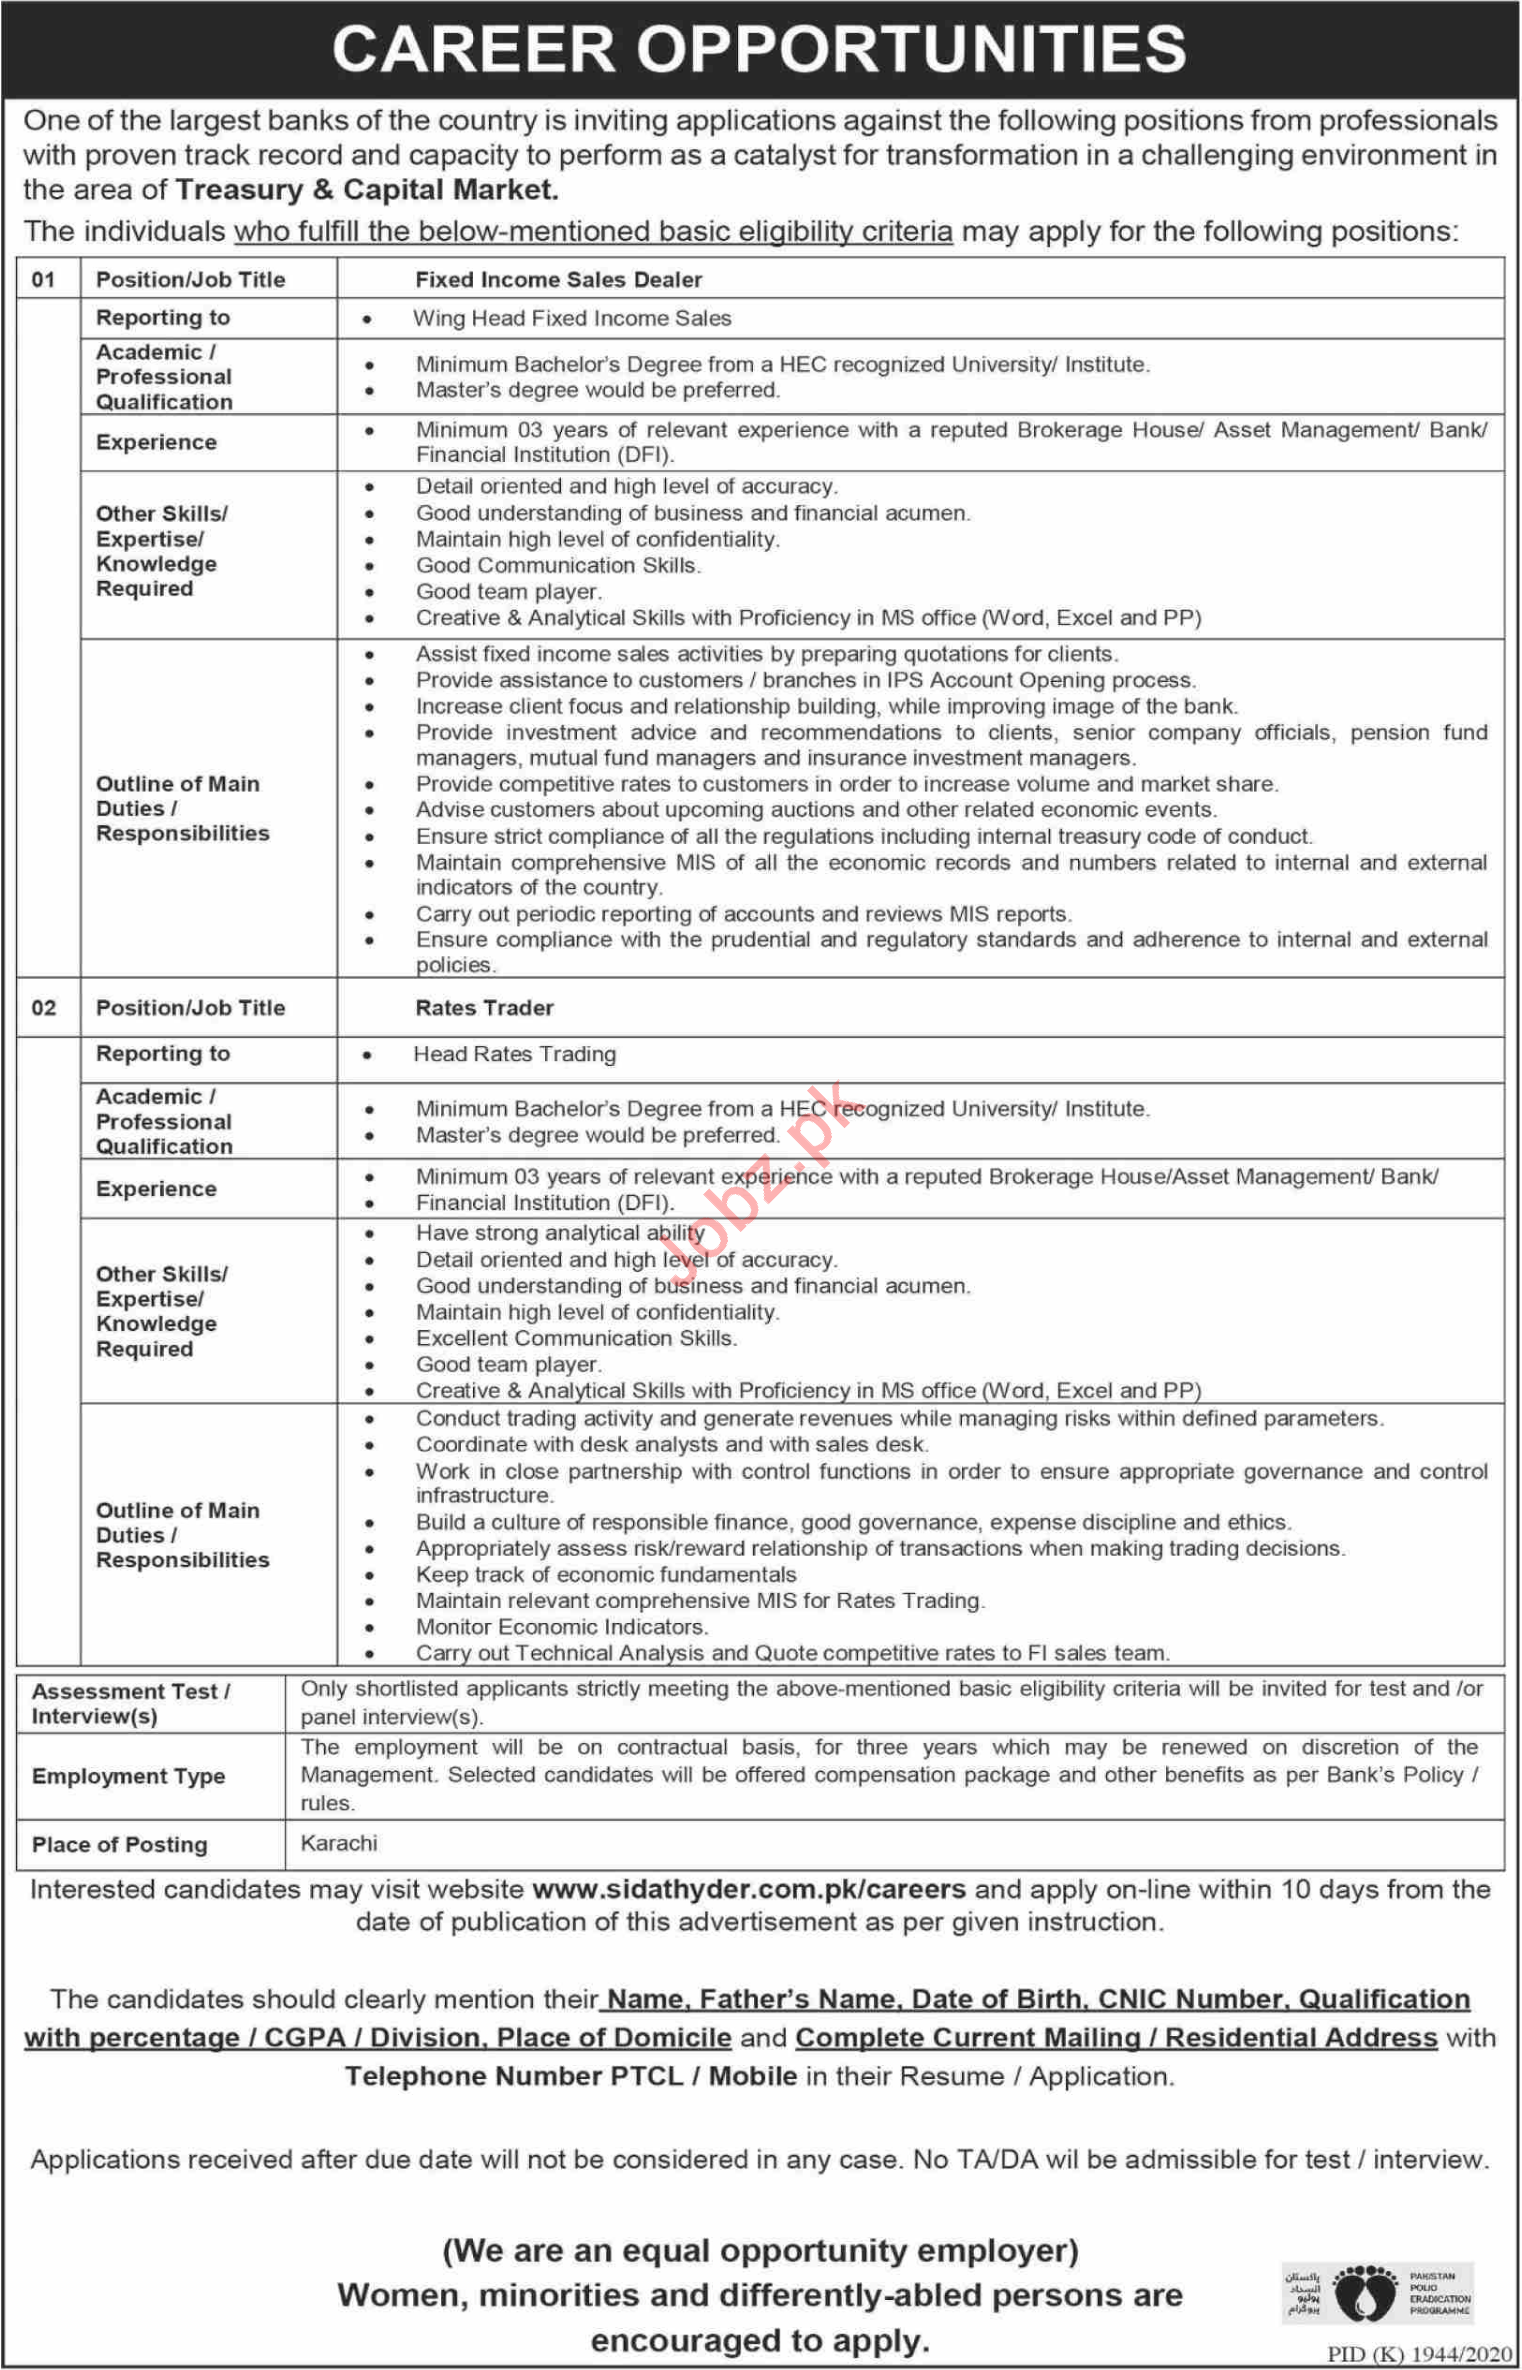 Sidat Hyder Morshed Associates Management Jobs 2021